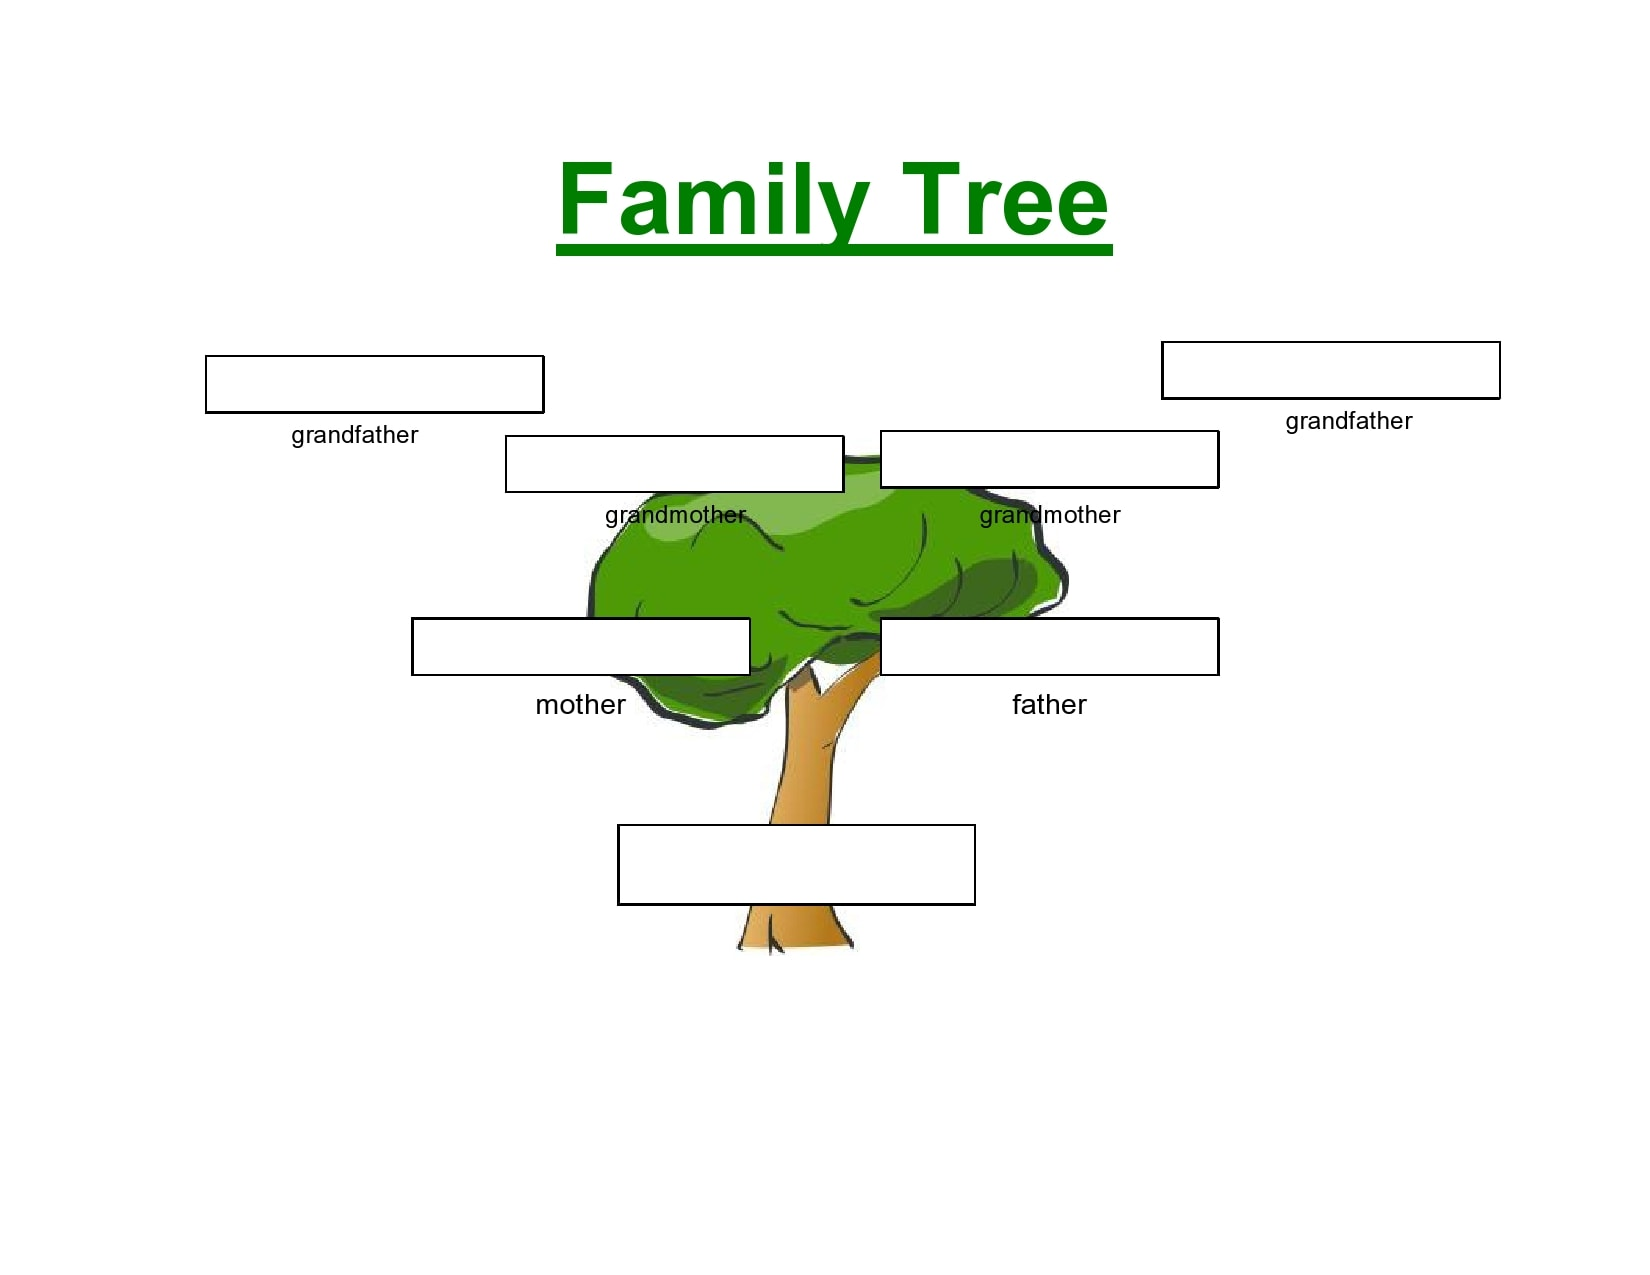 21 Editable Family Tree Templates [21% Free] - TemplateArchive For Fill In The Blank Family Tree Template